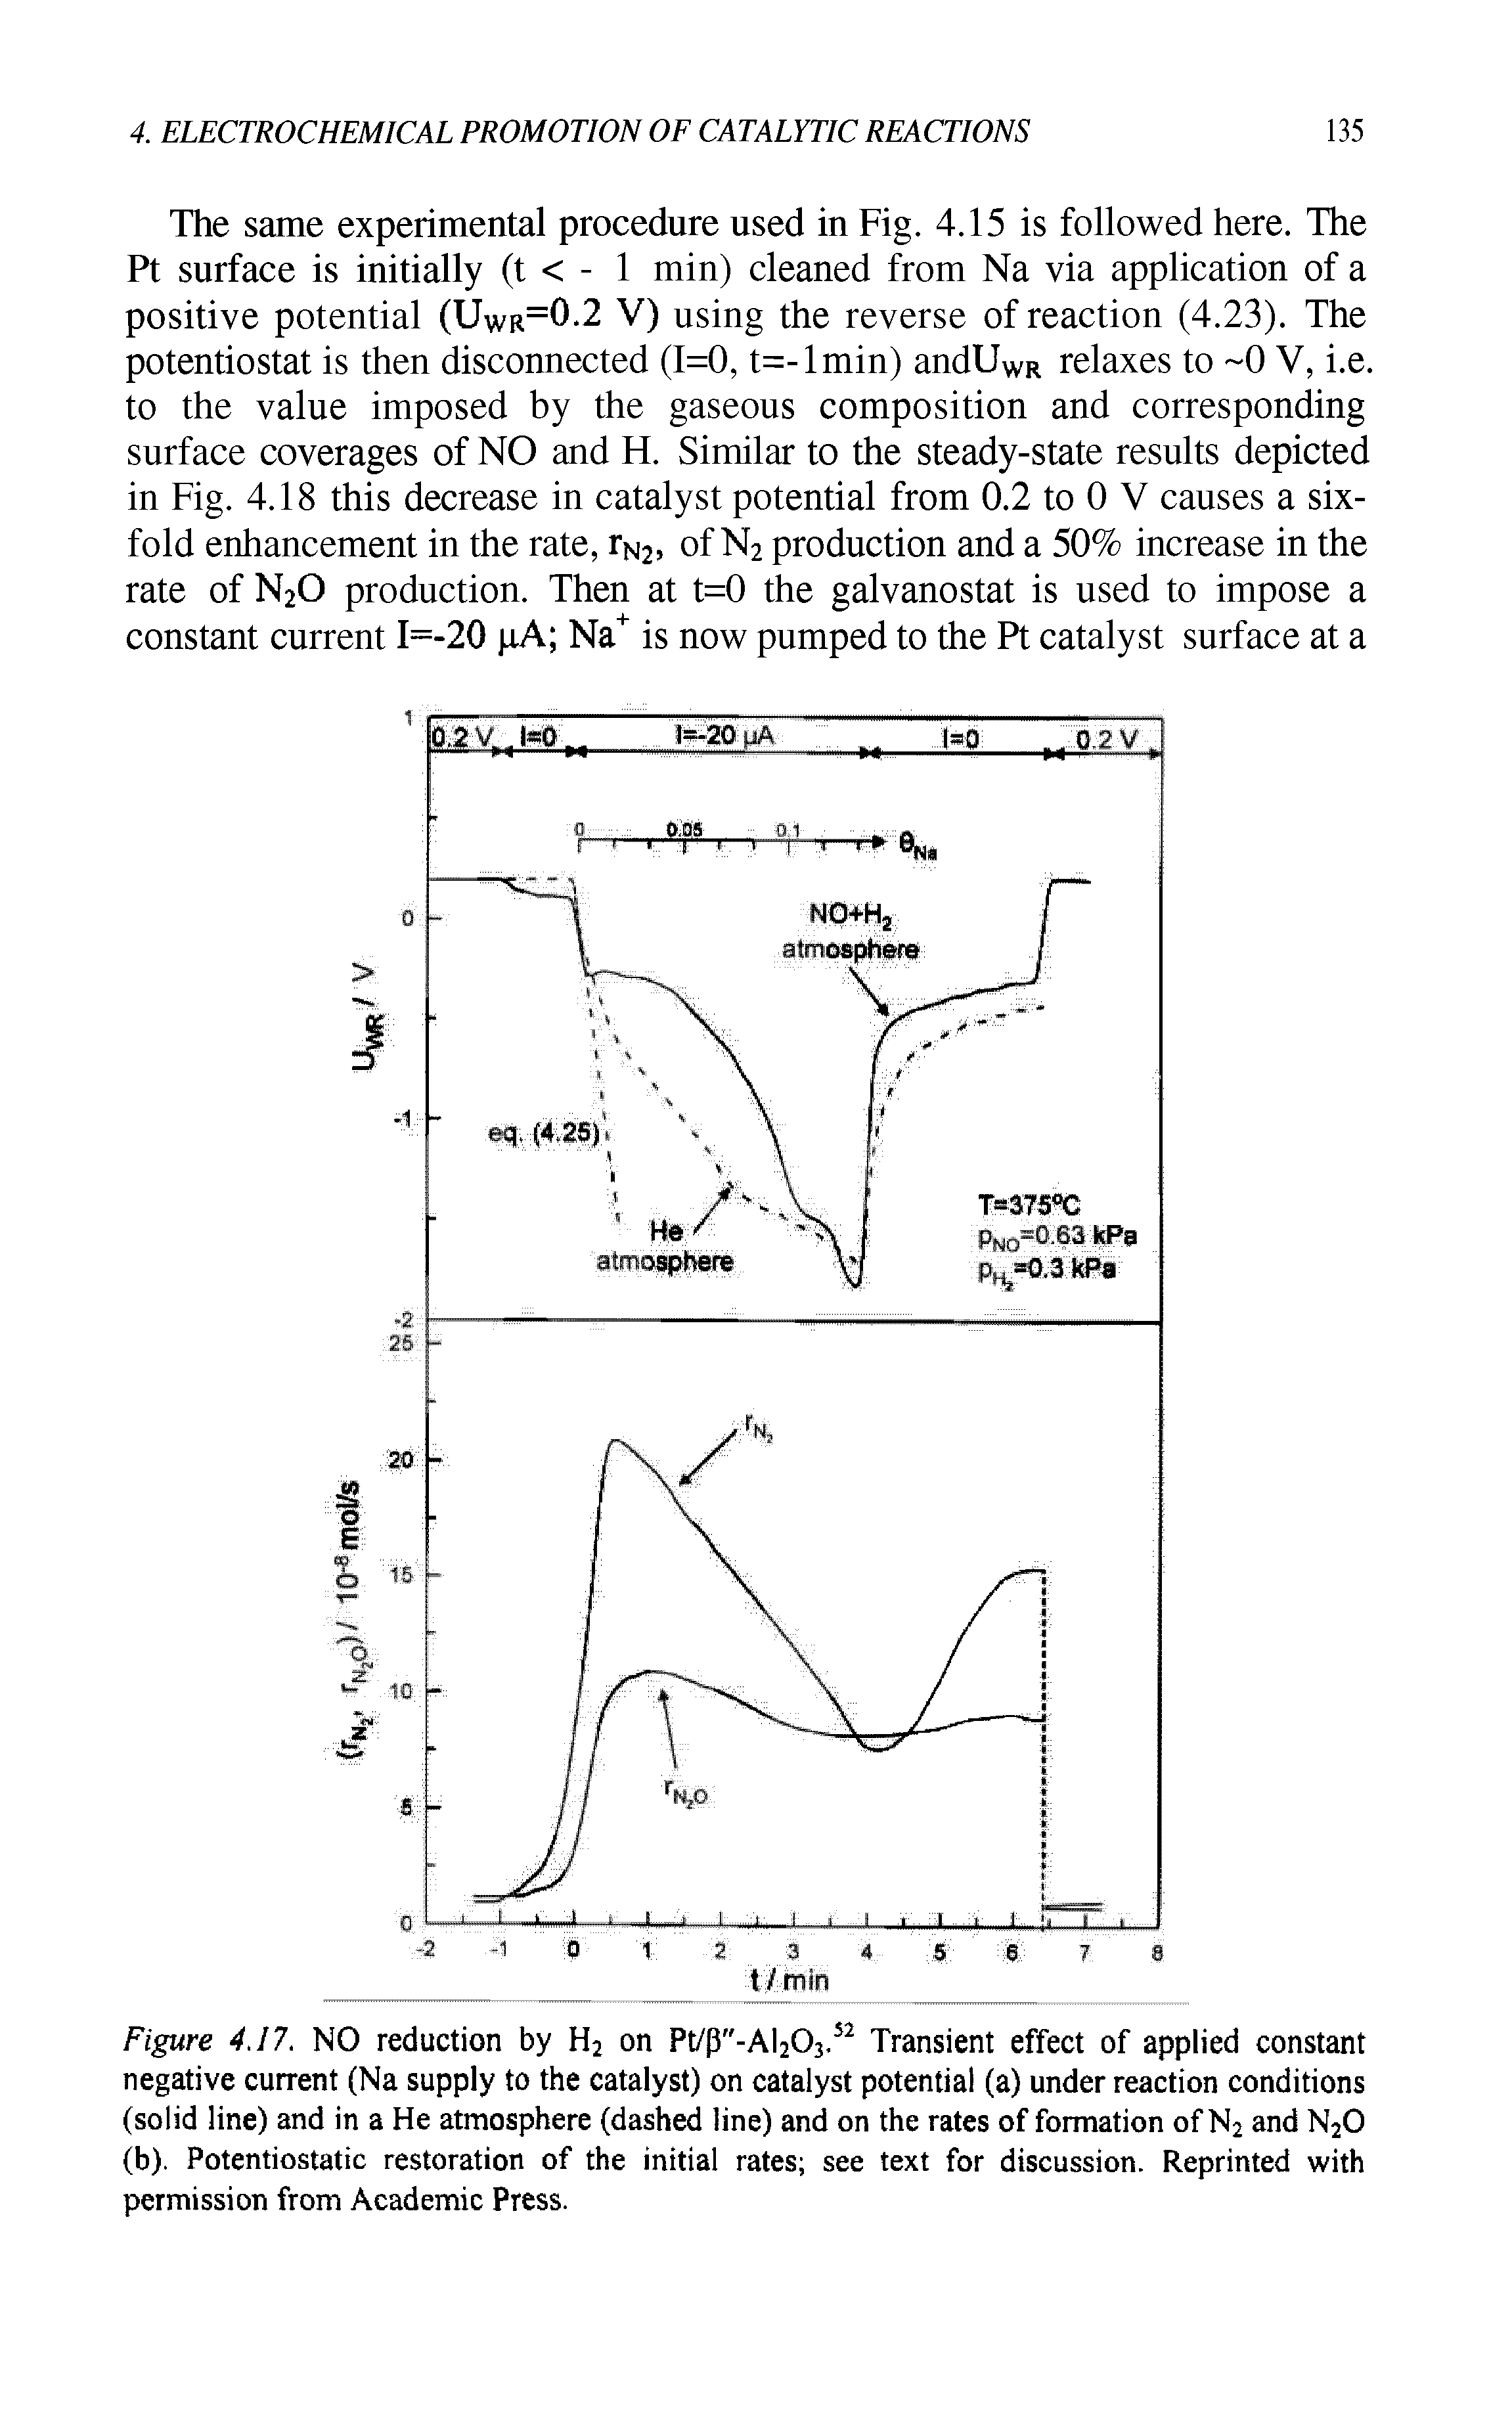 "Figure 4.17. NO reduction by H2 on Pt/p""-AI203.52 <a href=""/info/transient_effect"">Transient effect</a> of applied constant negative current (Na supply to the catalyst) on catalyst potential (a) under <a href=""/info/reaction_condition"">reaction conditions</a> (<a href=""/info/solid_lines"">solid line</a>) and in a He atmosphere (<a href=""/info/dashed_lines"">dashed line</a>) and on the rates of formation of N2 and N20 (b). Potentiostatic restoration of the <a href=""/info/initial_rate"">initial rates</a> see text for discussion. Reprinted with permission from Academic Press."